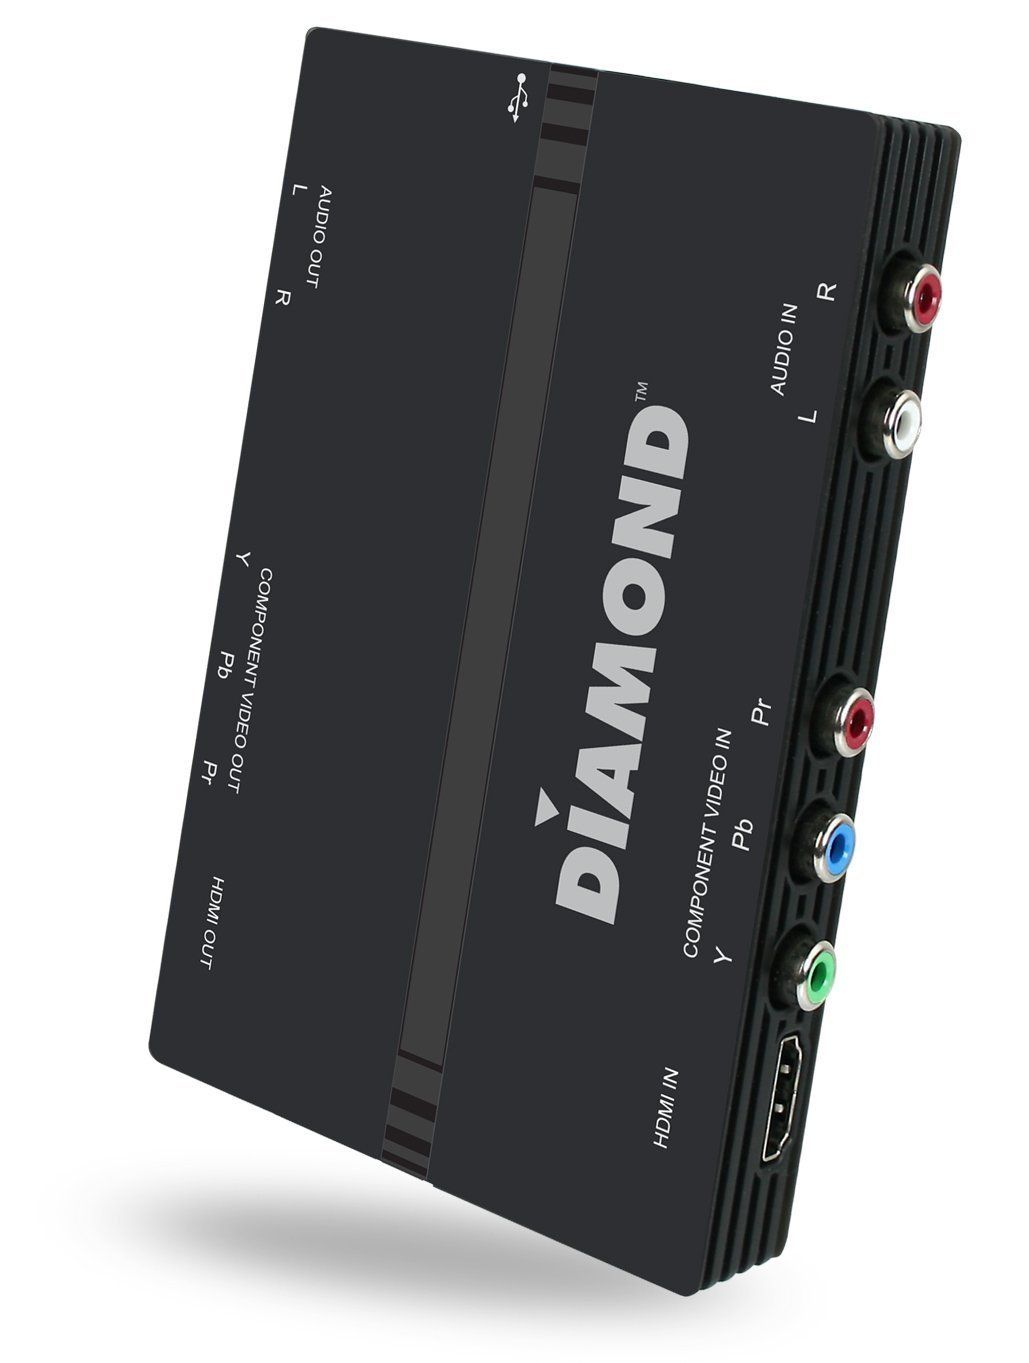 DIAMOND GC1500 GAME CASTER HD VIDEO CAPTURE DIGITAL RECORDER ...